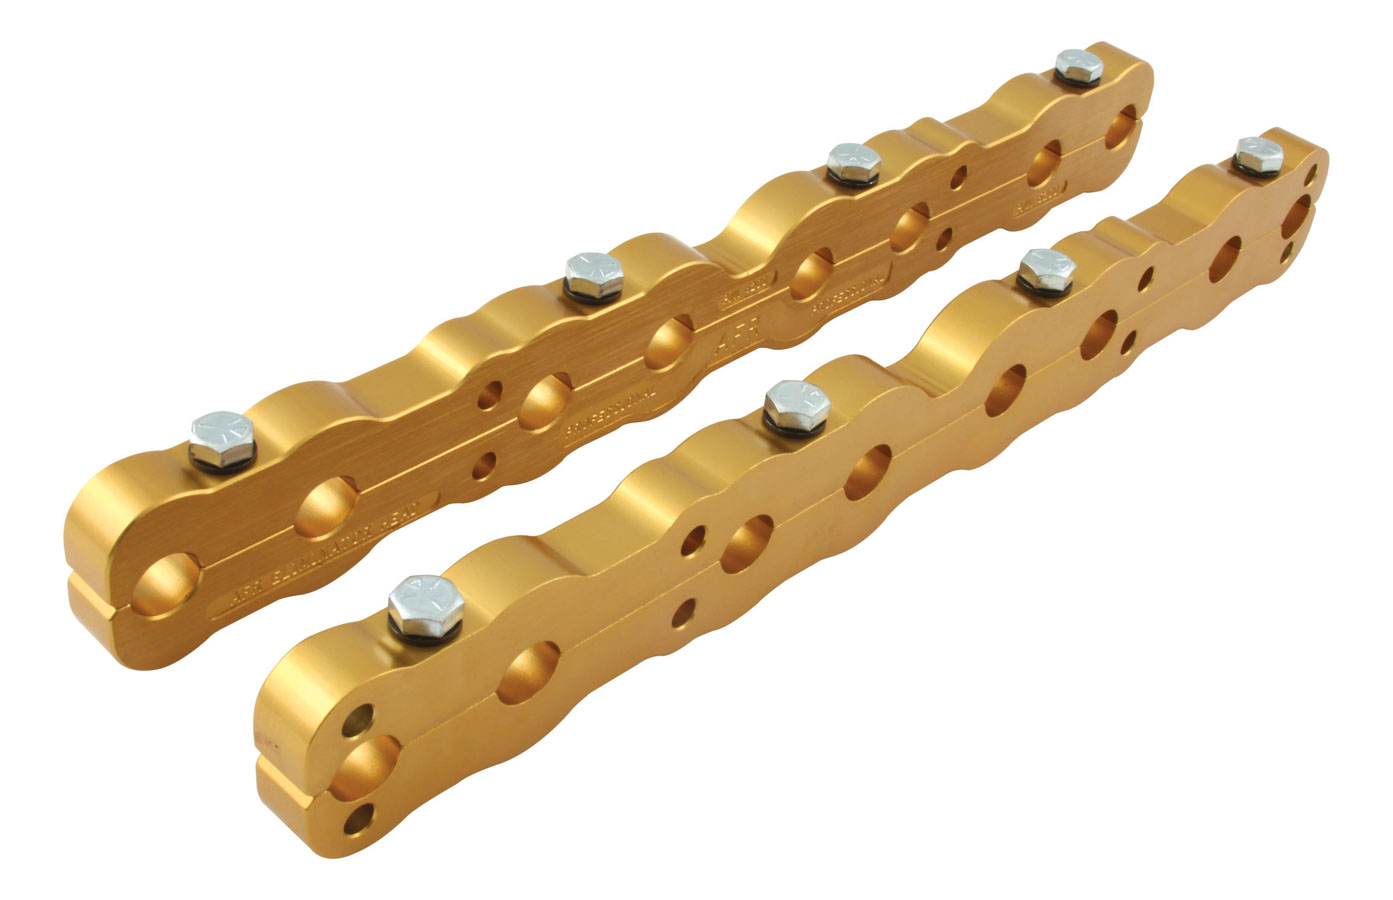 Shop for AIR FLOW RESEARCH Camshafts and Valvetrain